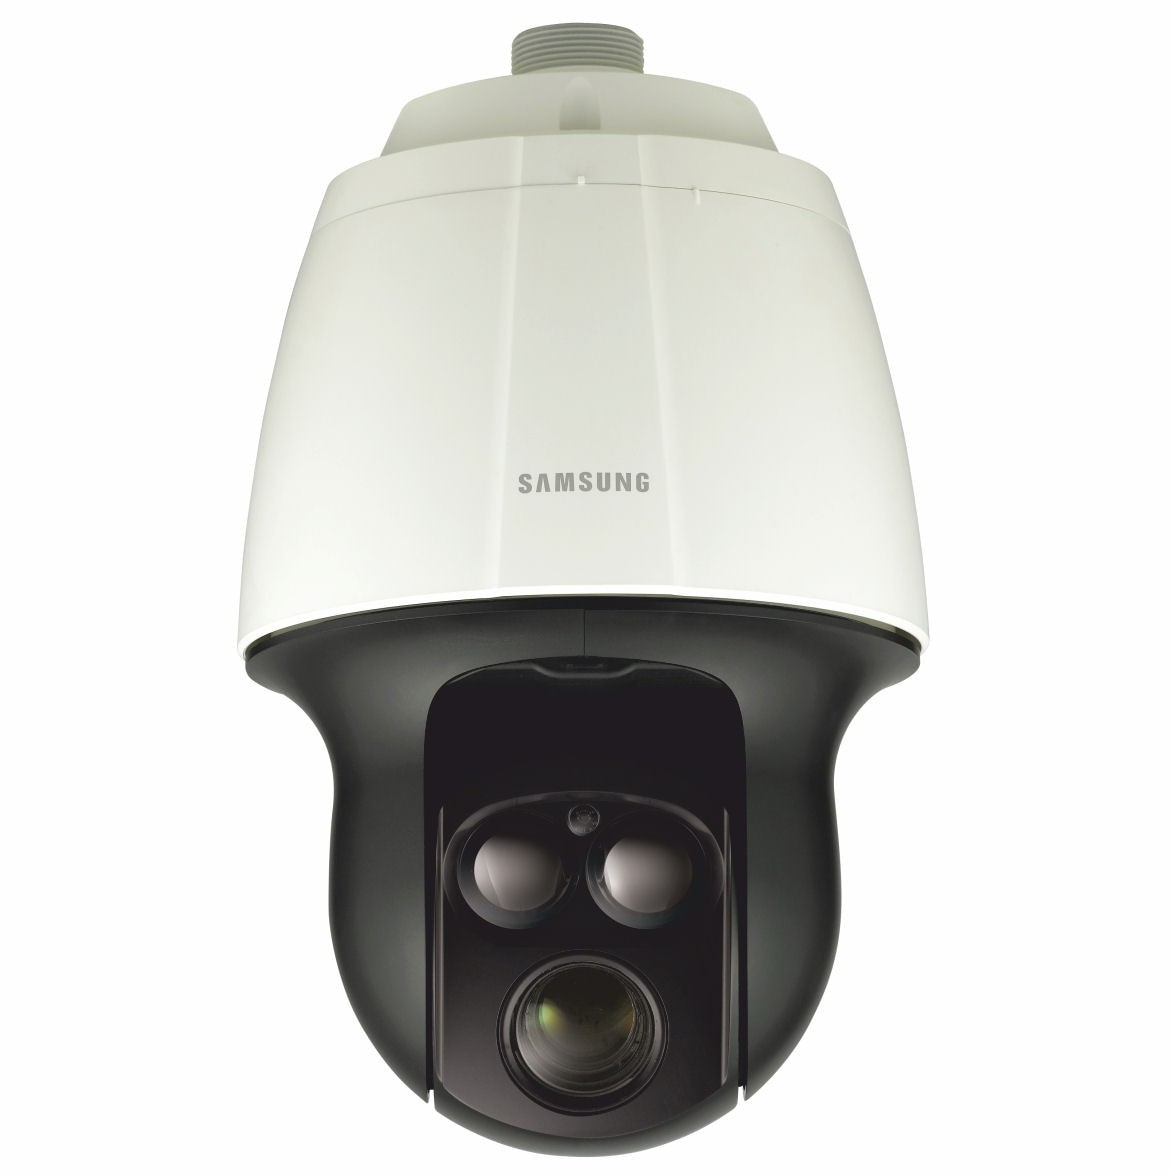 Samsung Snp6230rh 2 Megapixel Full Hd 23x Network Ir Ptz Dome Camera Panasonic Wiring Diagram Hanwha